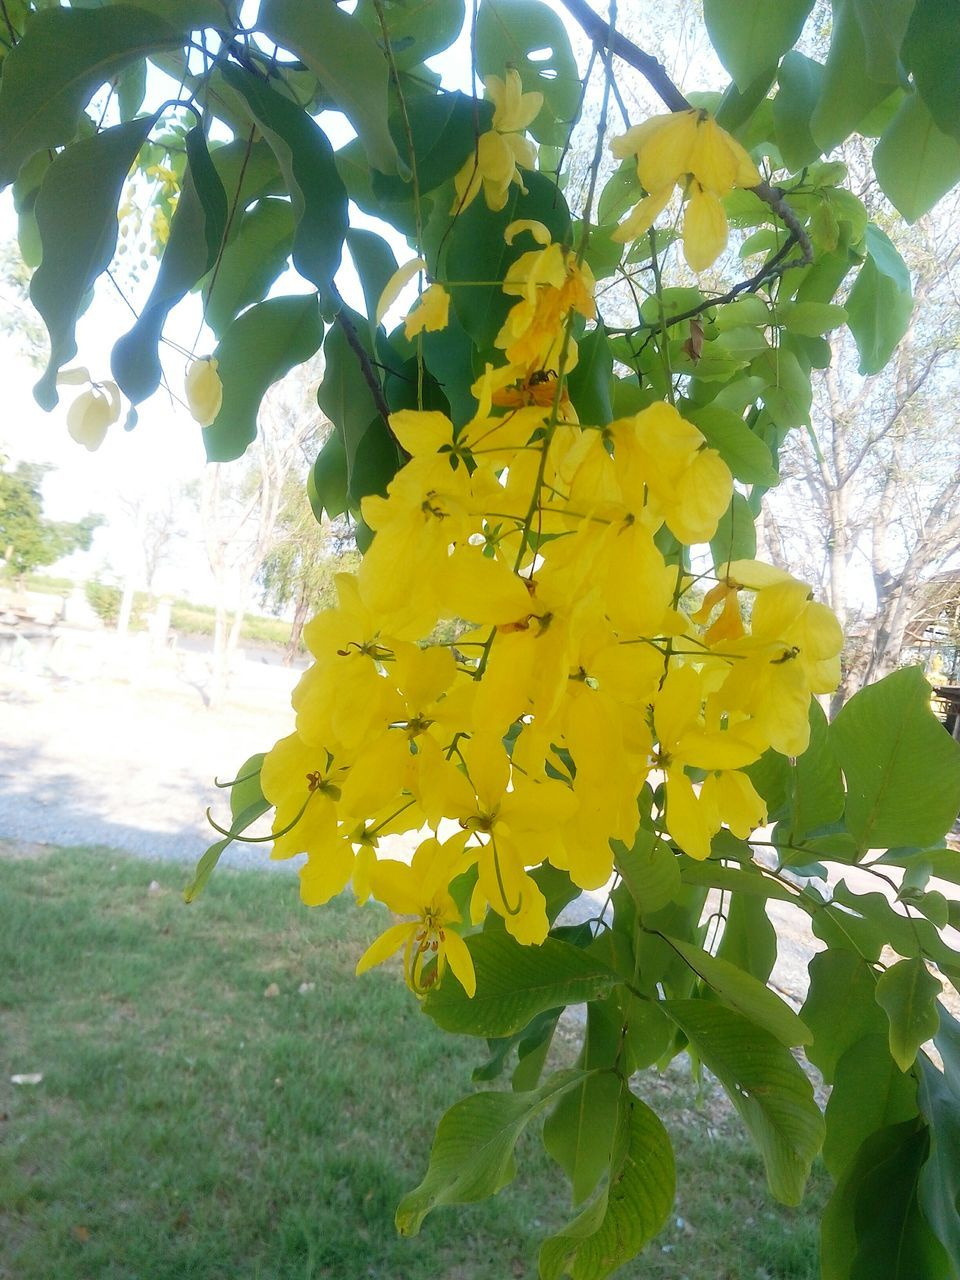 yellow, growth, flower, nature, fragility, day, beauty in nature, leaf, petal, outdoors, plant, freshness, no people, tree, low angle view, close-up, flower head, branch